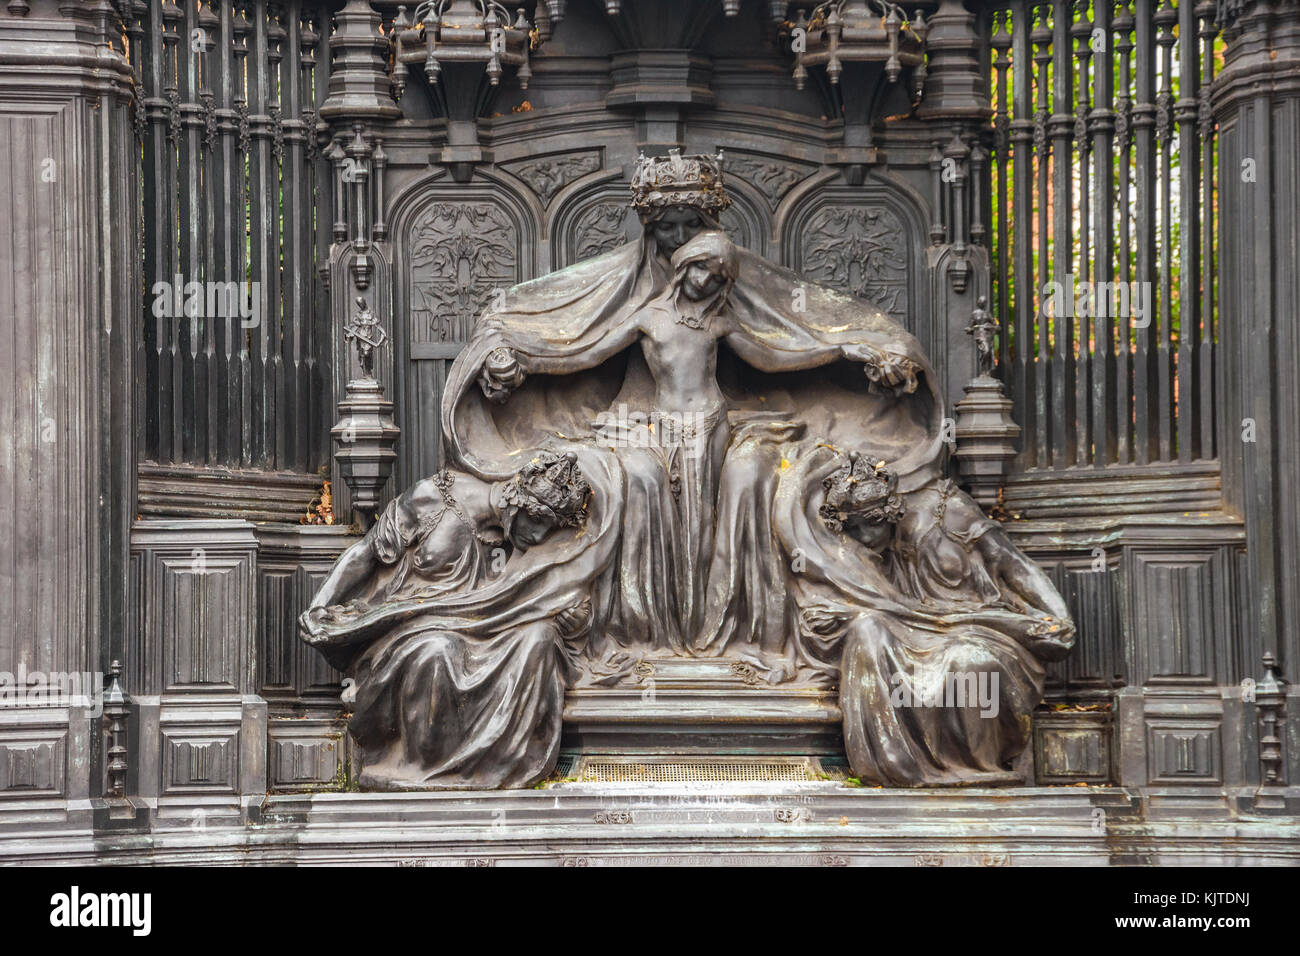 Art Nouveau memorial to Queen Alexandra of Denmark, was executed by the sculptor Sir Alfred Gilbert. - Stock Image